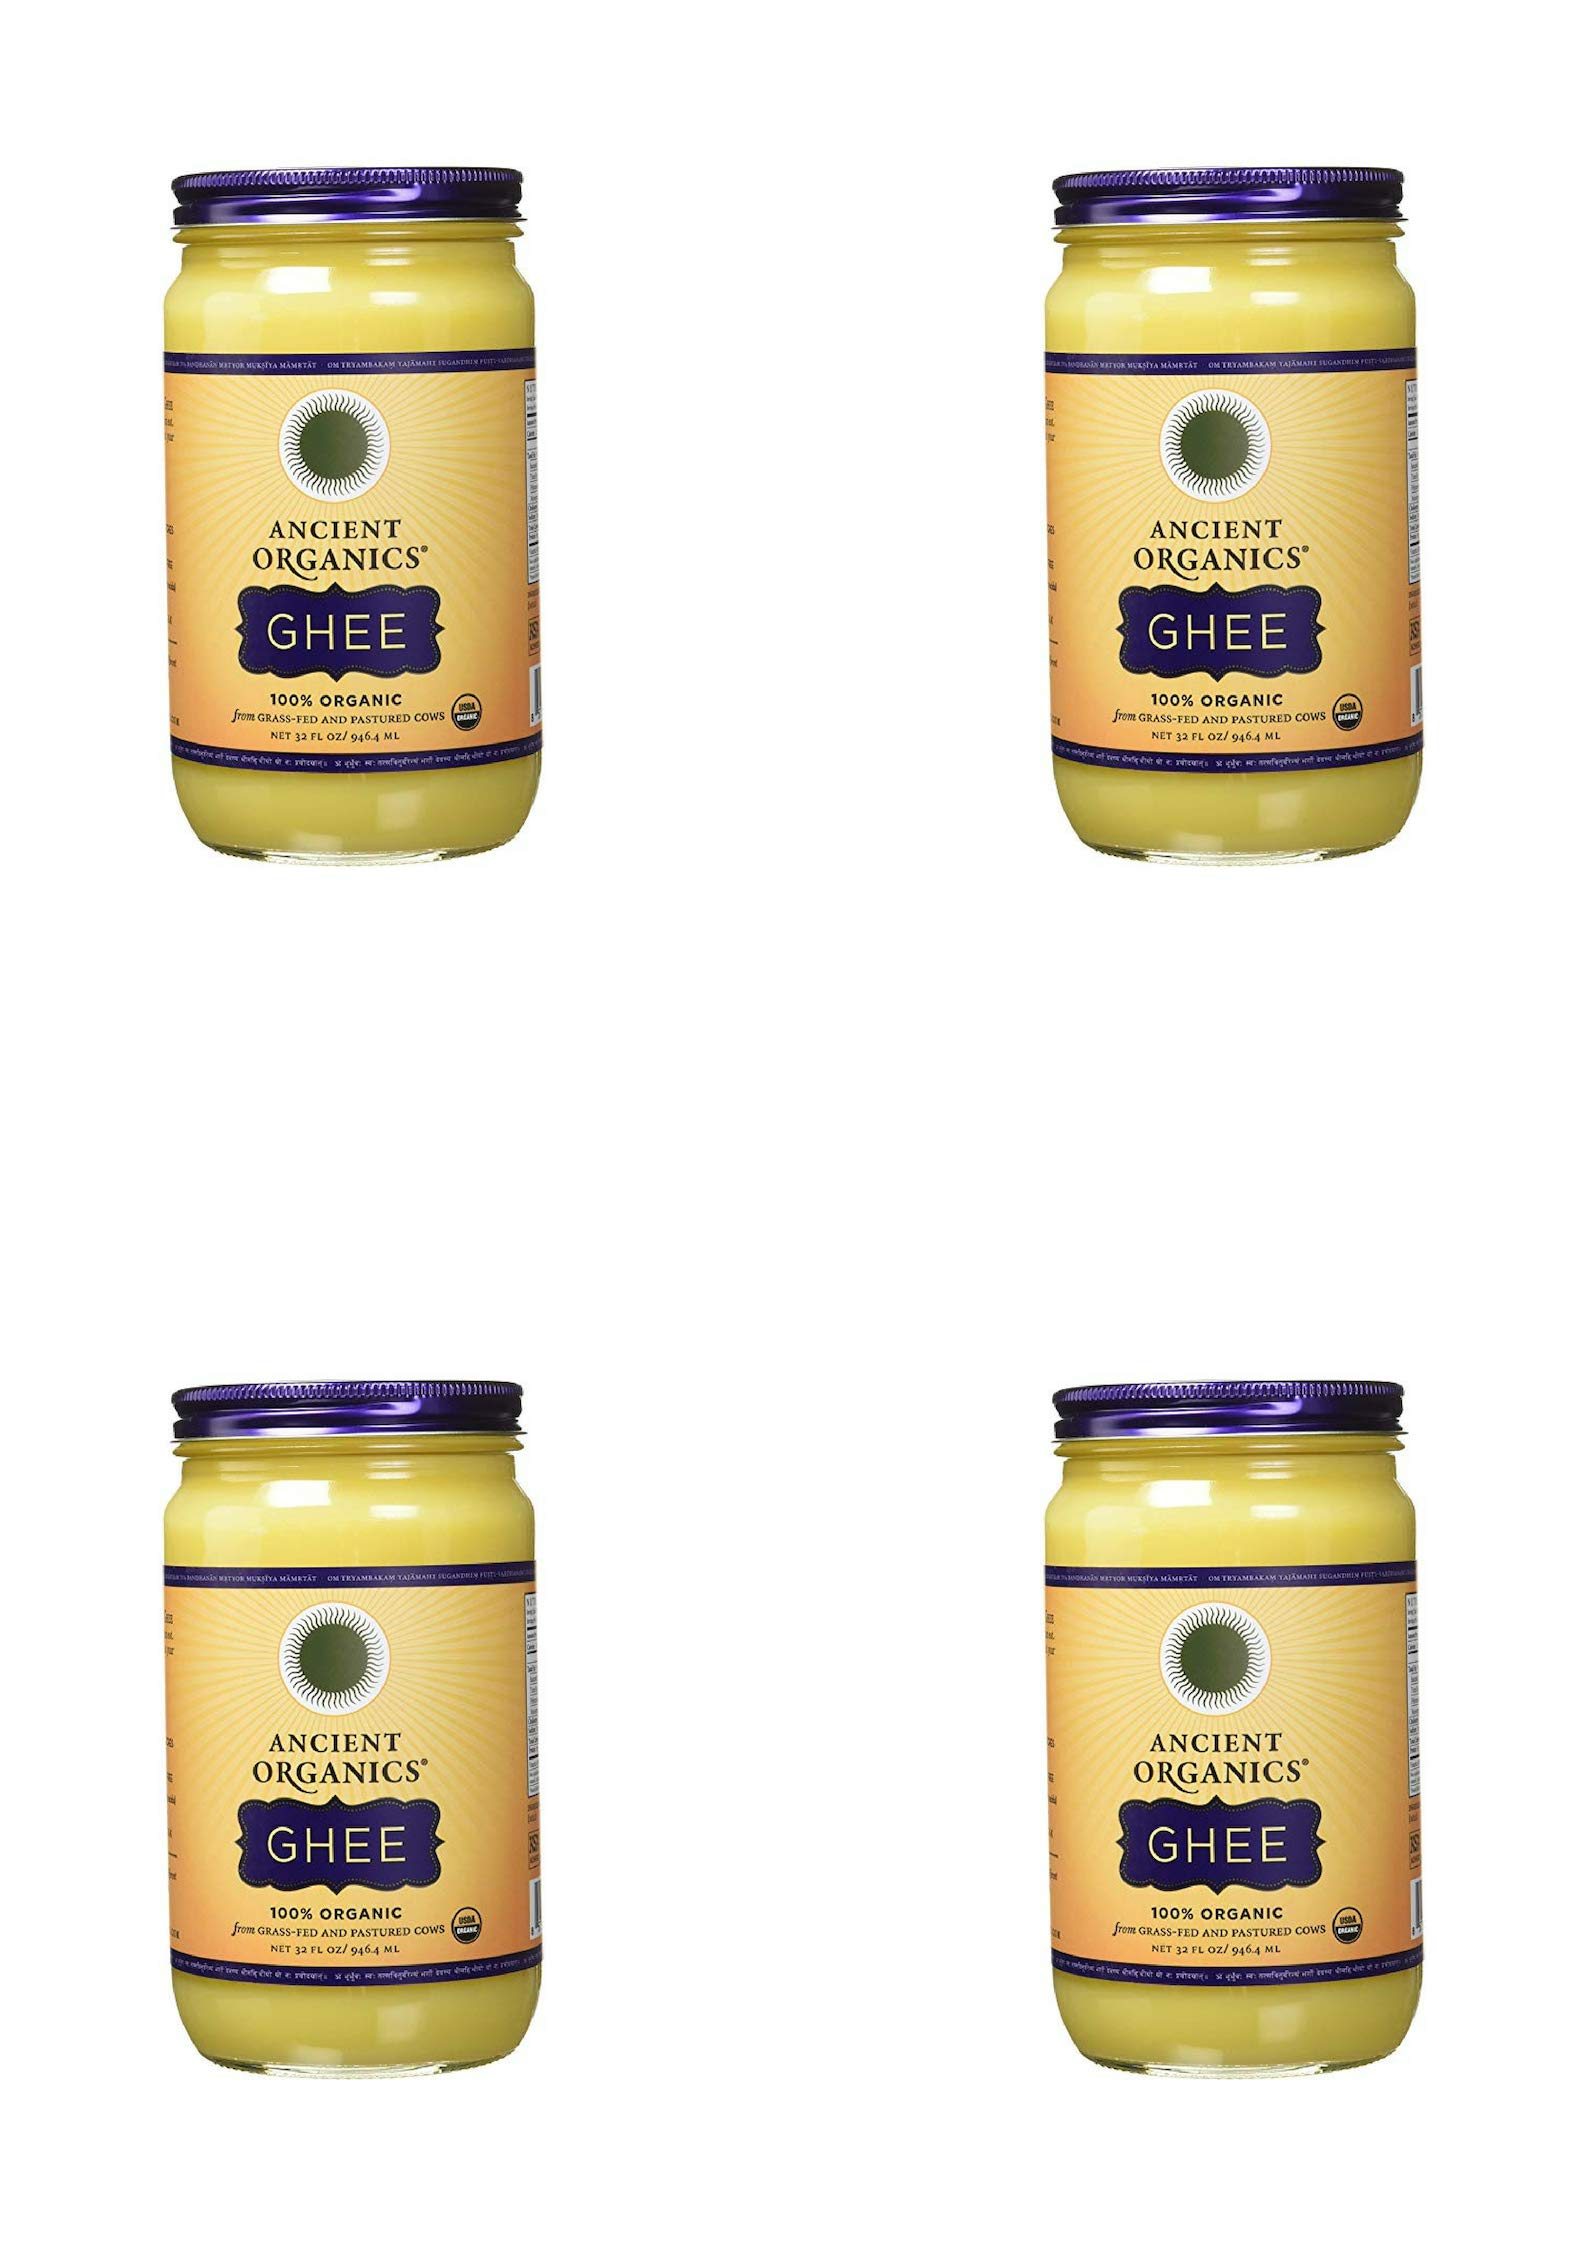 ANCIENT ORGANICS 100% Organic Ghee from Grass-fed Cows, 32oz (4 pack)